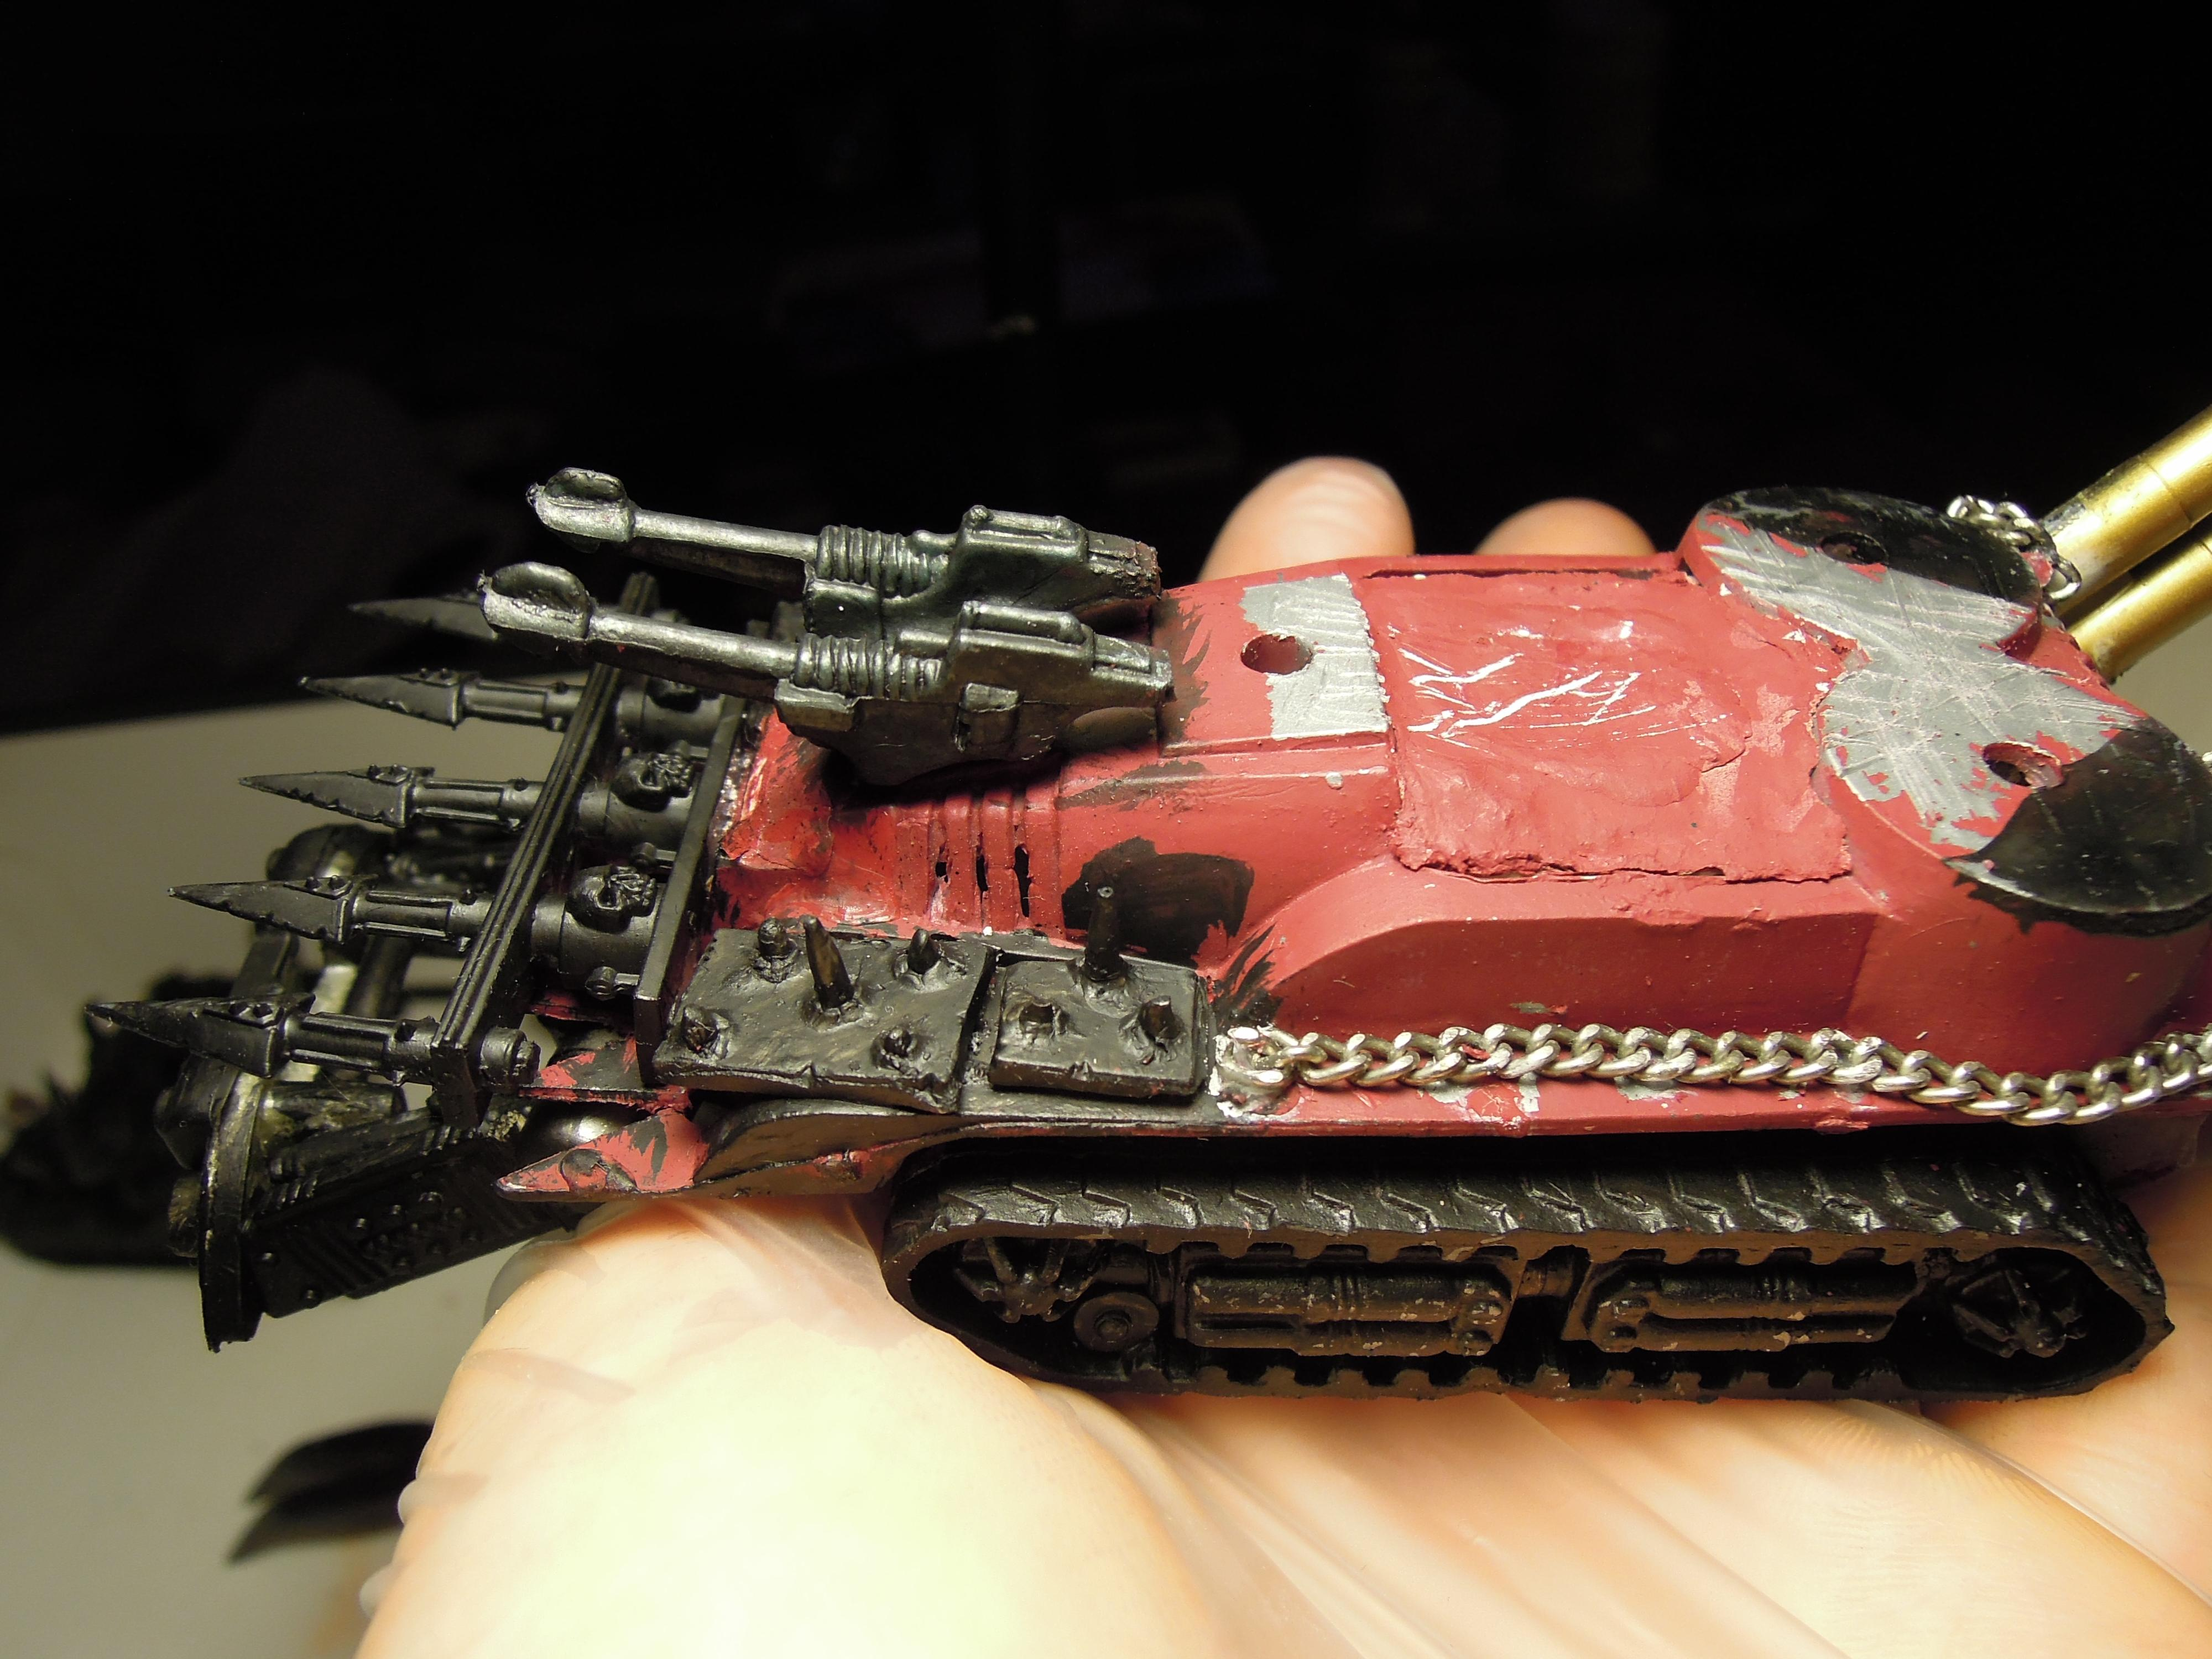 Armored Vehicle, Blood Pact, Chaos, Conversion, Daemon Engine, Dozer Blade, Heavy Support, Laser, Scratch Build, Tank, Technolog, Tehnolog, Warhammer 40,000, Work In Progress